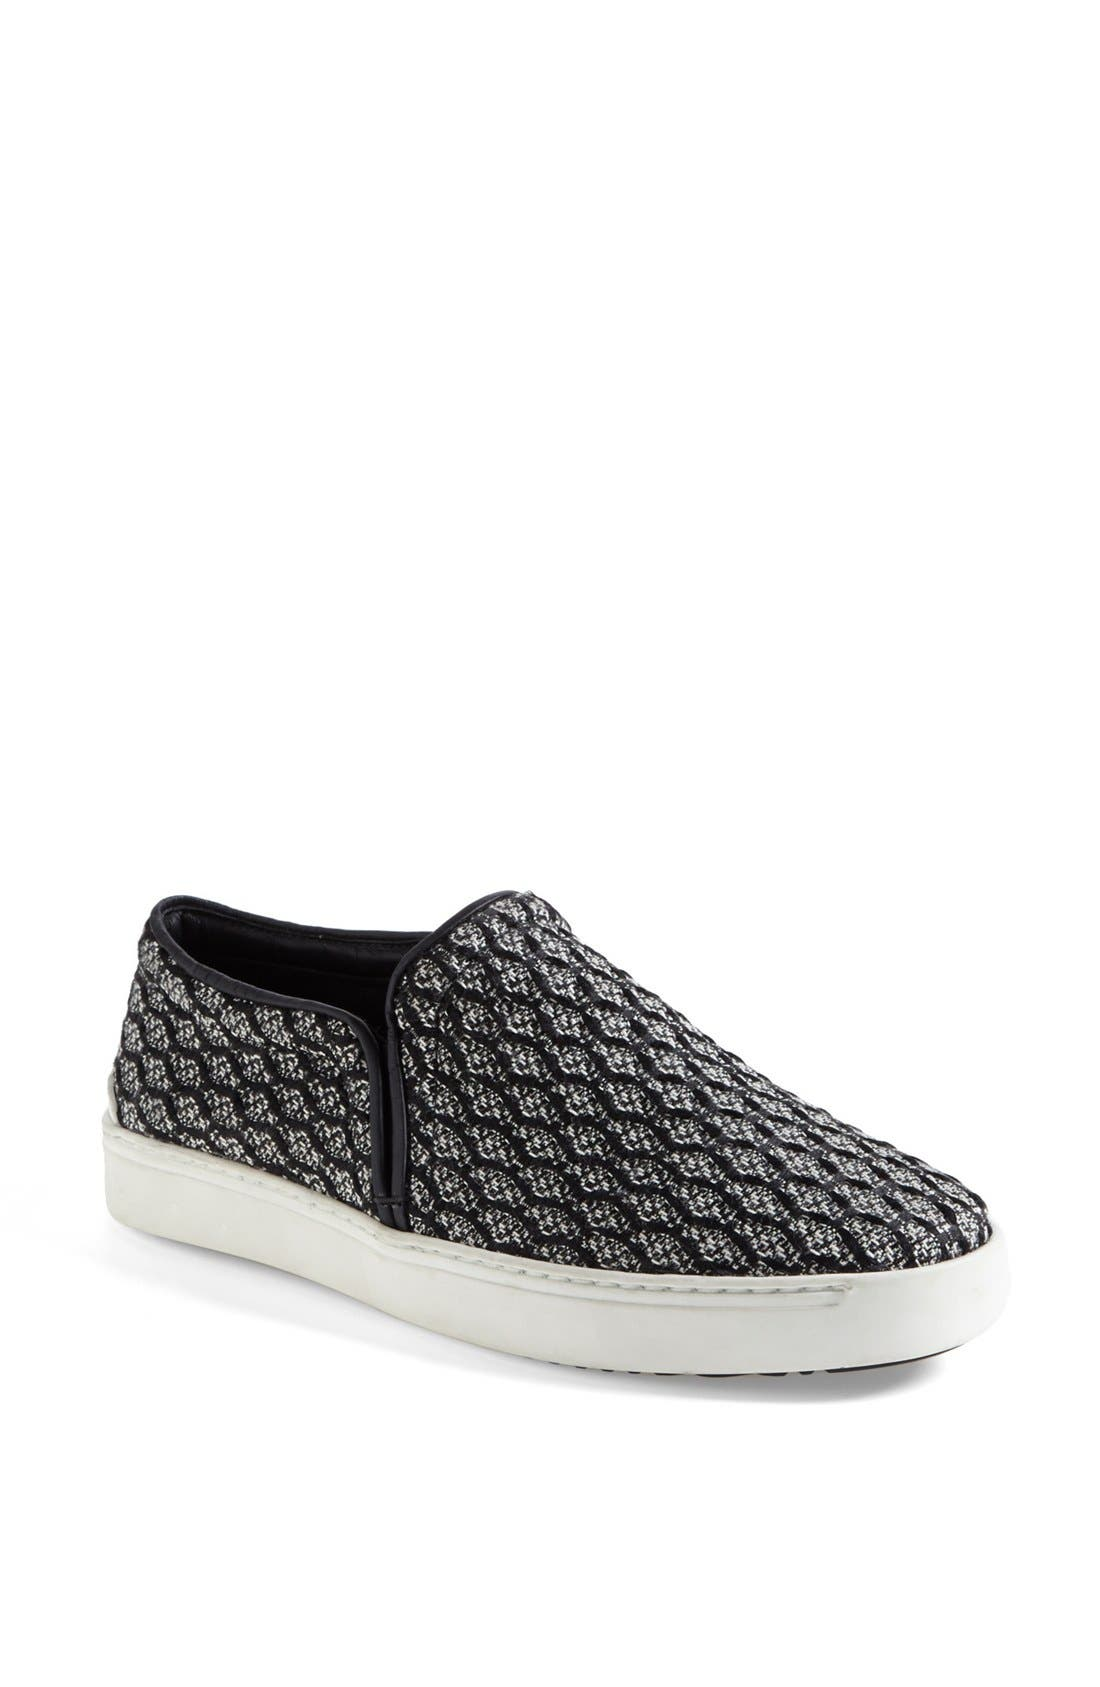 Alternate Image 1 Selected - rag & bone 'Kent' Sneaker (Online Only)